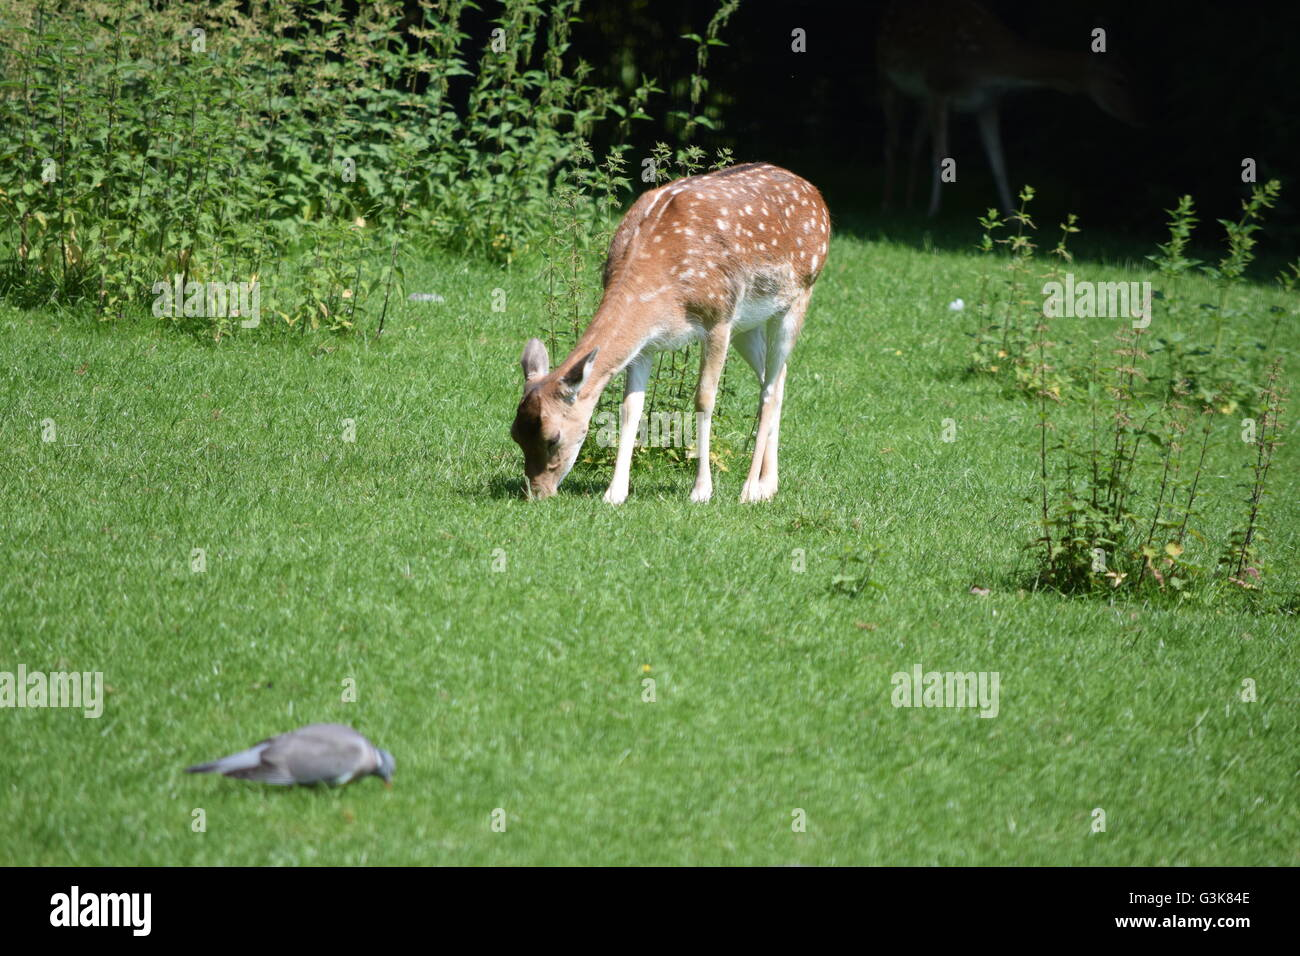 Hirsche in den park Stockbild